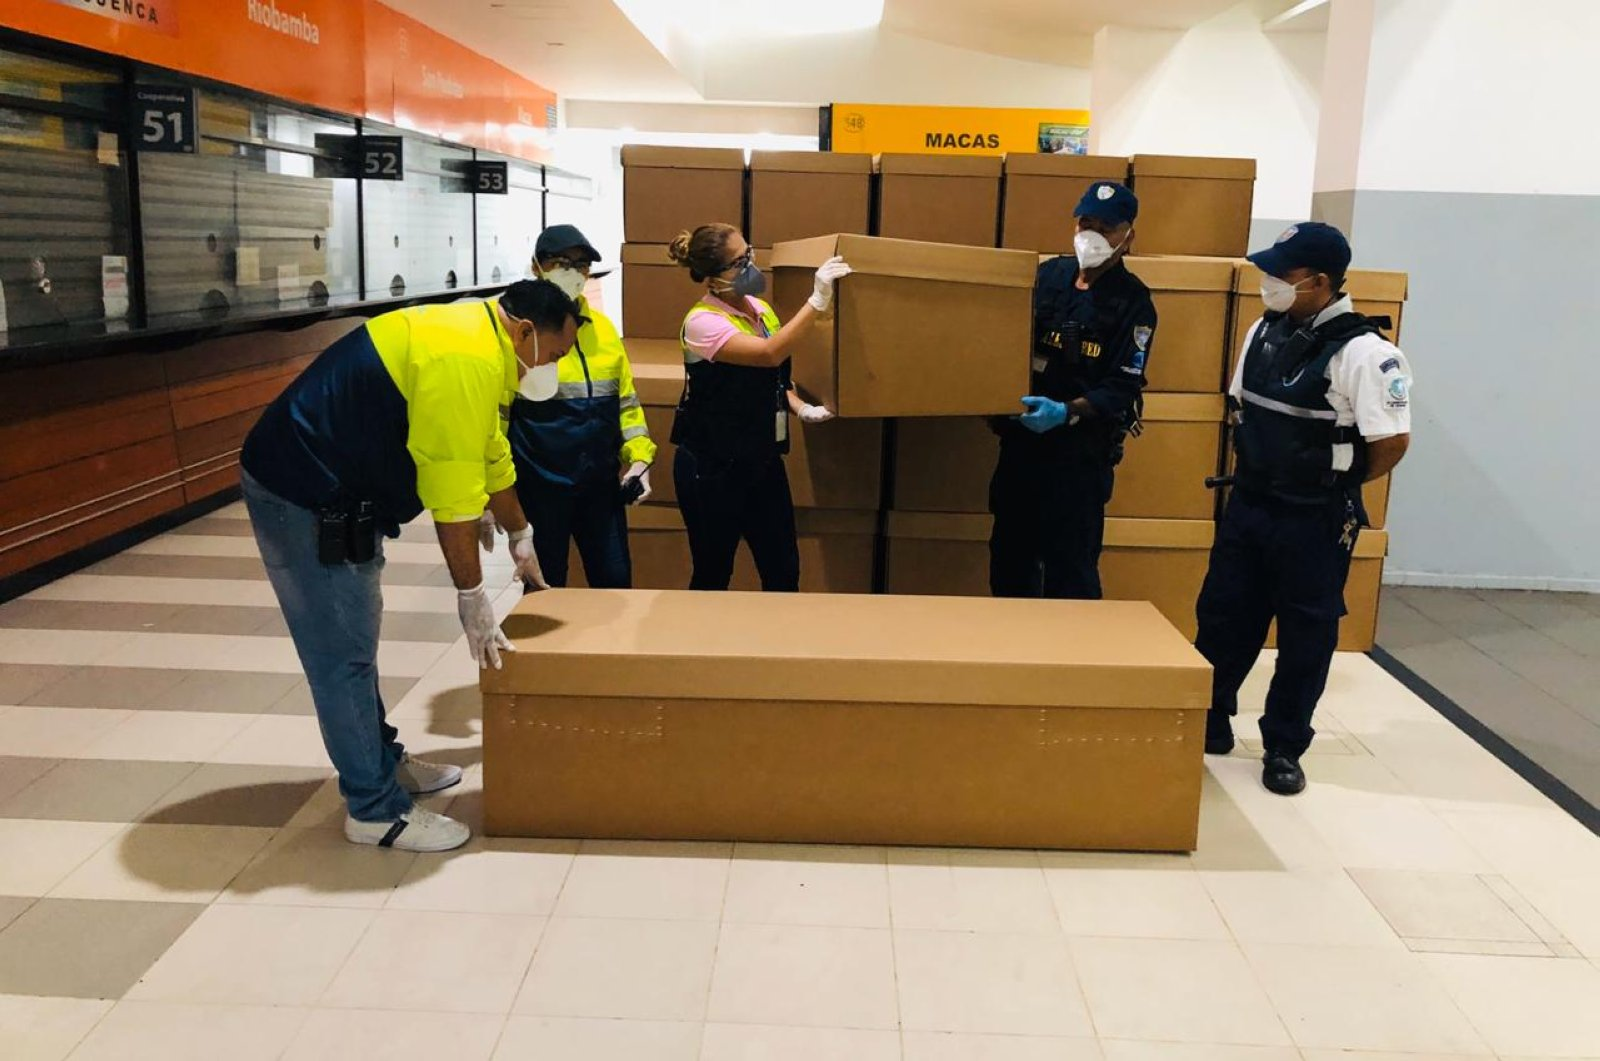 Handout picture released by Guayaquil Mayor's Office shows employees with a donation of cardboard coffins in Guayaquil, Ecuador, Sunday, April 5, 2020. (AFP Photo)